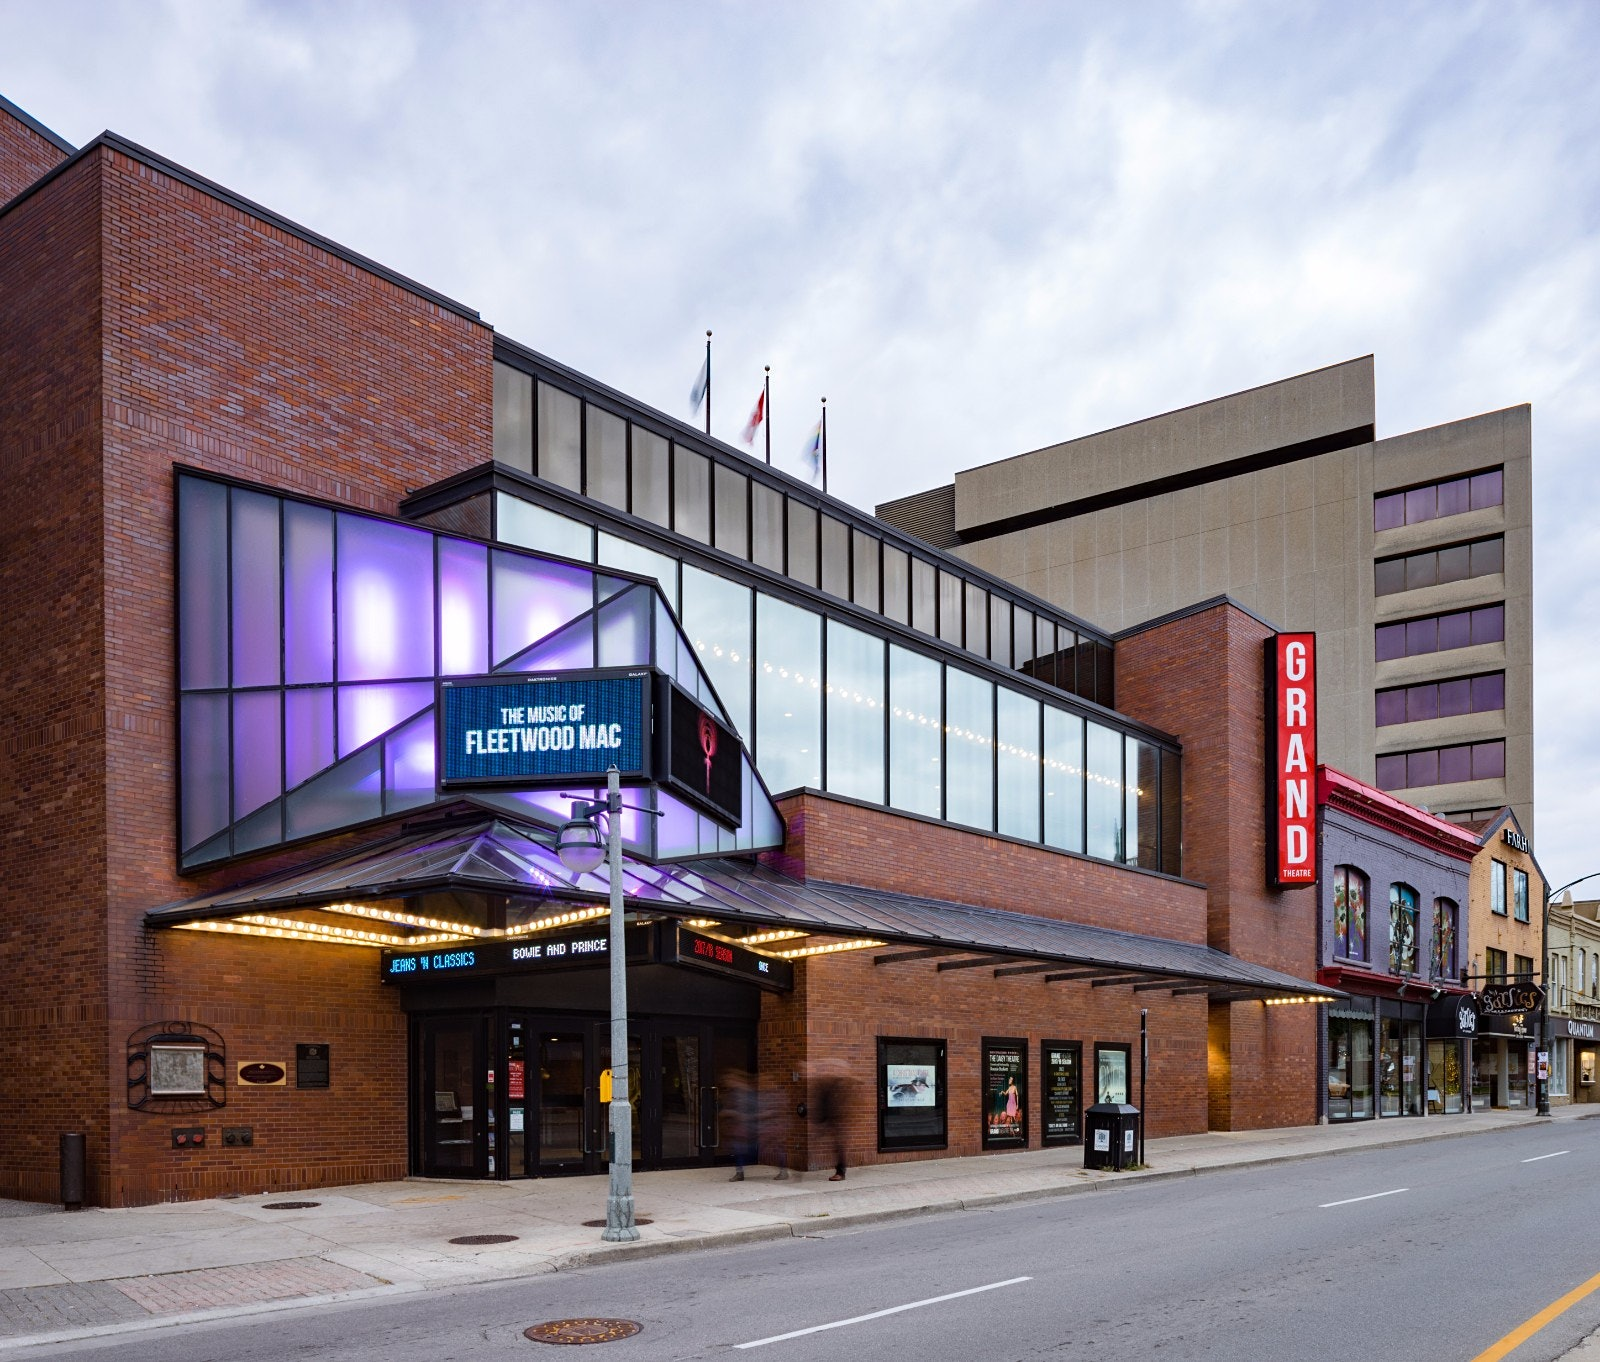 Gloomy Day in London Ontario - The Grand Theatre